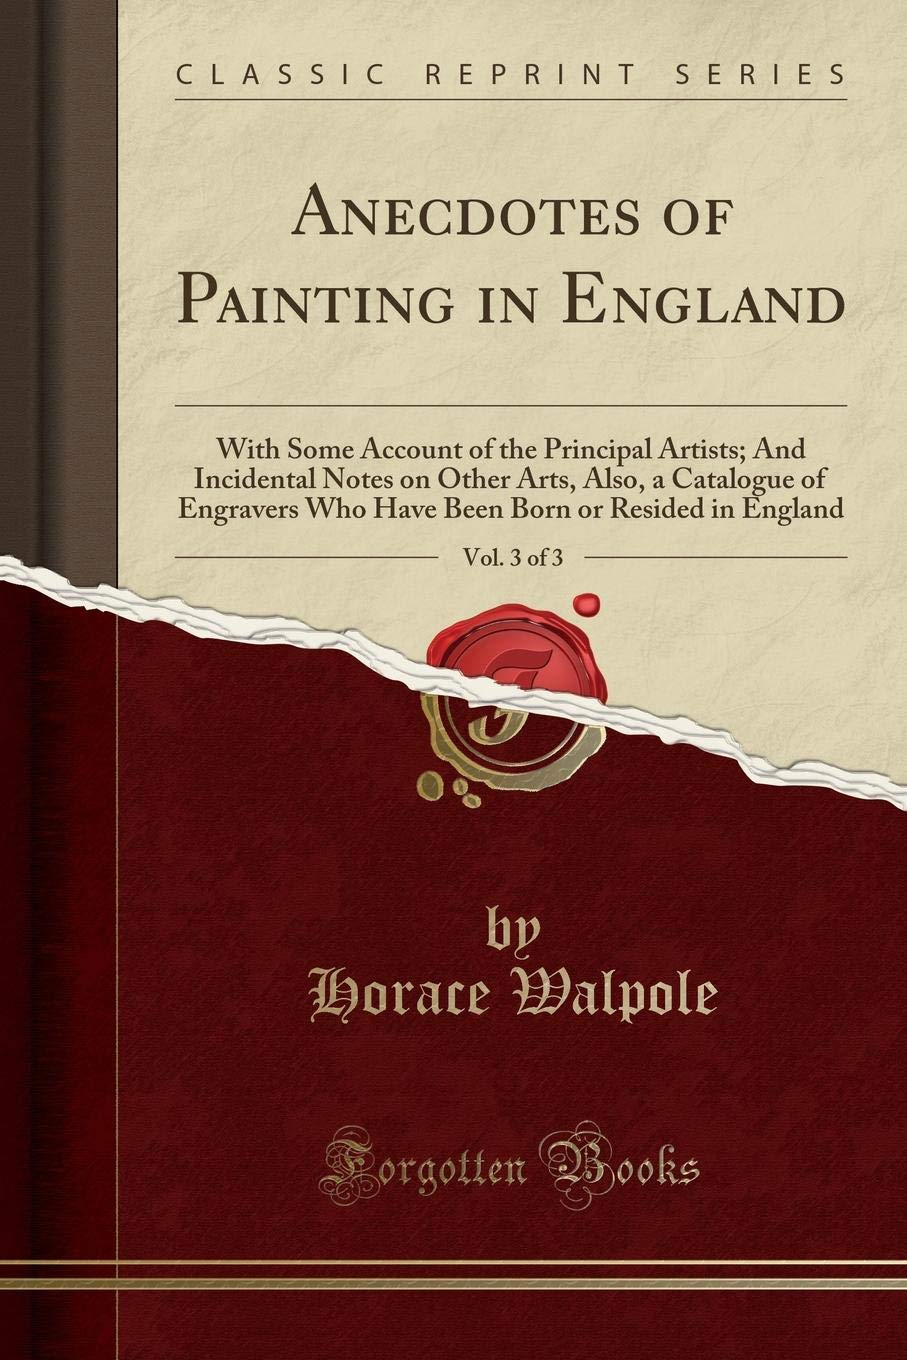 Download Anecdotes of Painting in England, Vol. 3 of 3: With Some Account of the Principal Artists; And Incidental Notes on Other Arts, Also, a Catalogue of ... Born or Resided in England (Classic Reprint) PDF